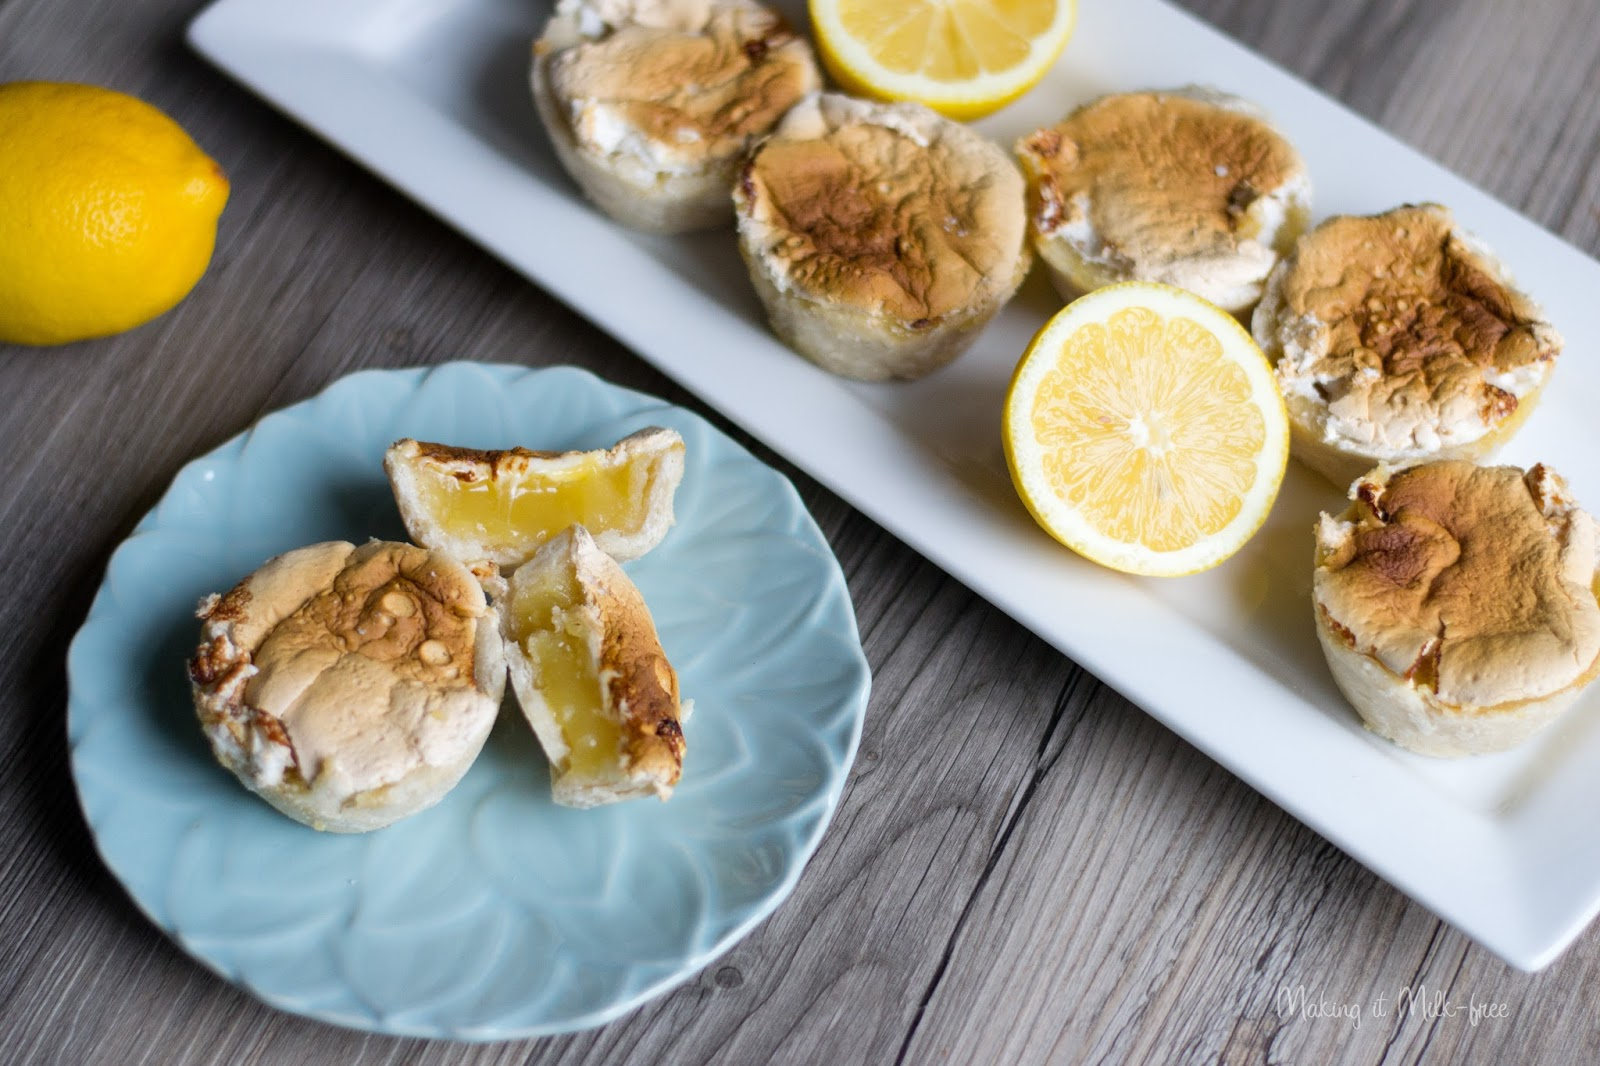 dairy free, gluten free mini lemon tarts from Making it Milk-free